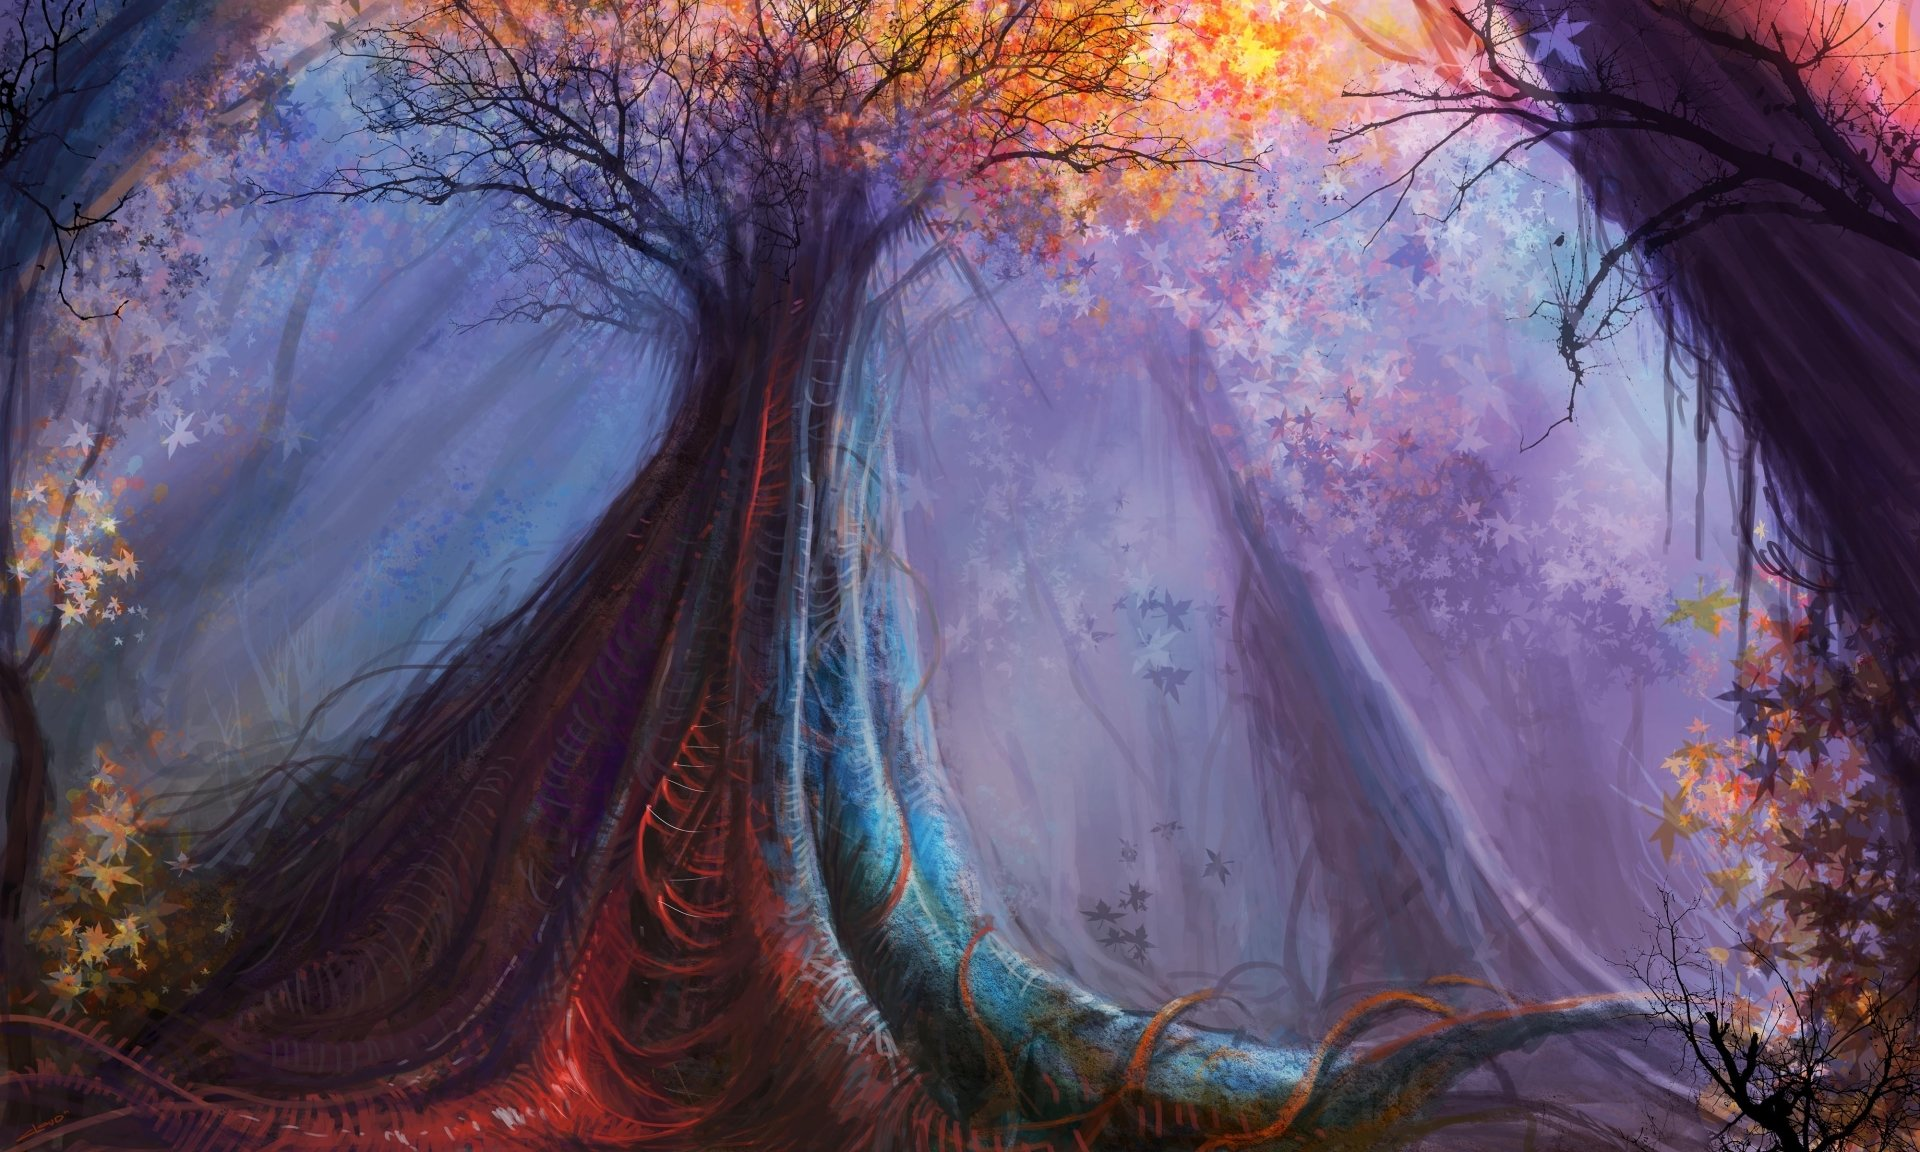 Fantasy - Forest  Tree Fantasy Artistic Fall Leaf Wallpaper